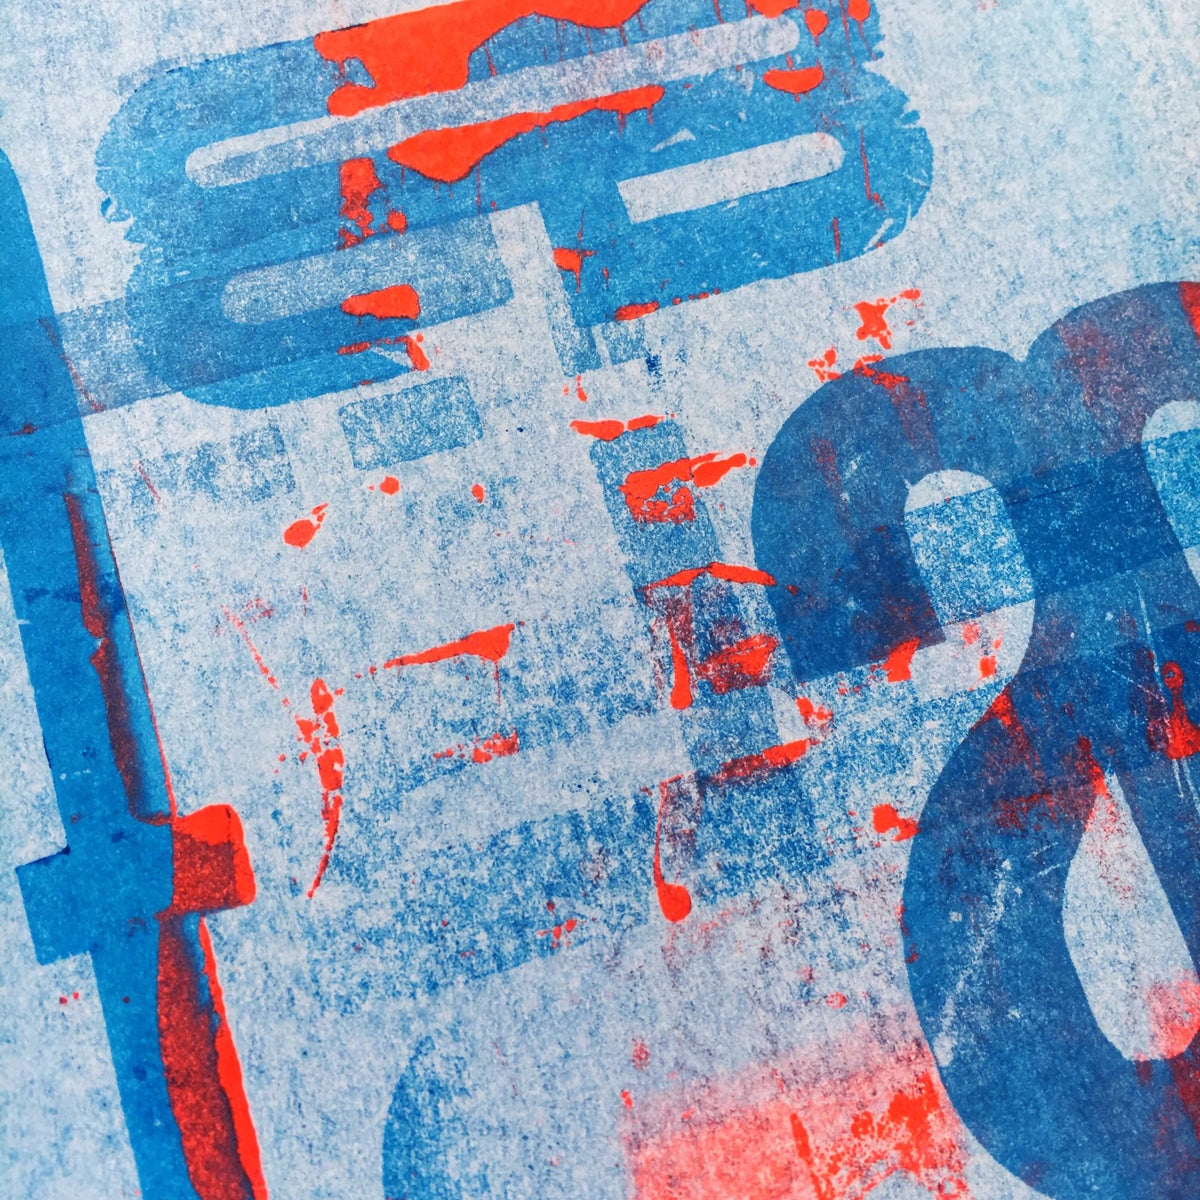 Image of One-off Typo Poster #2-025